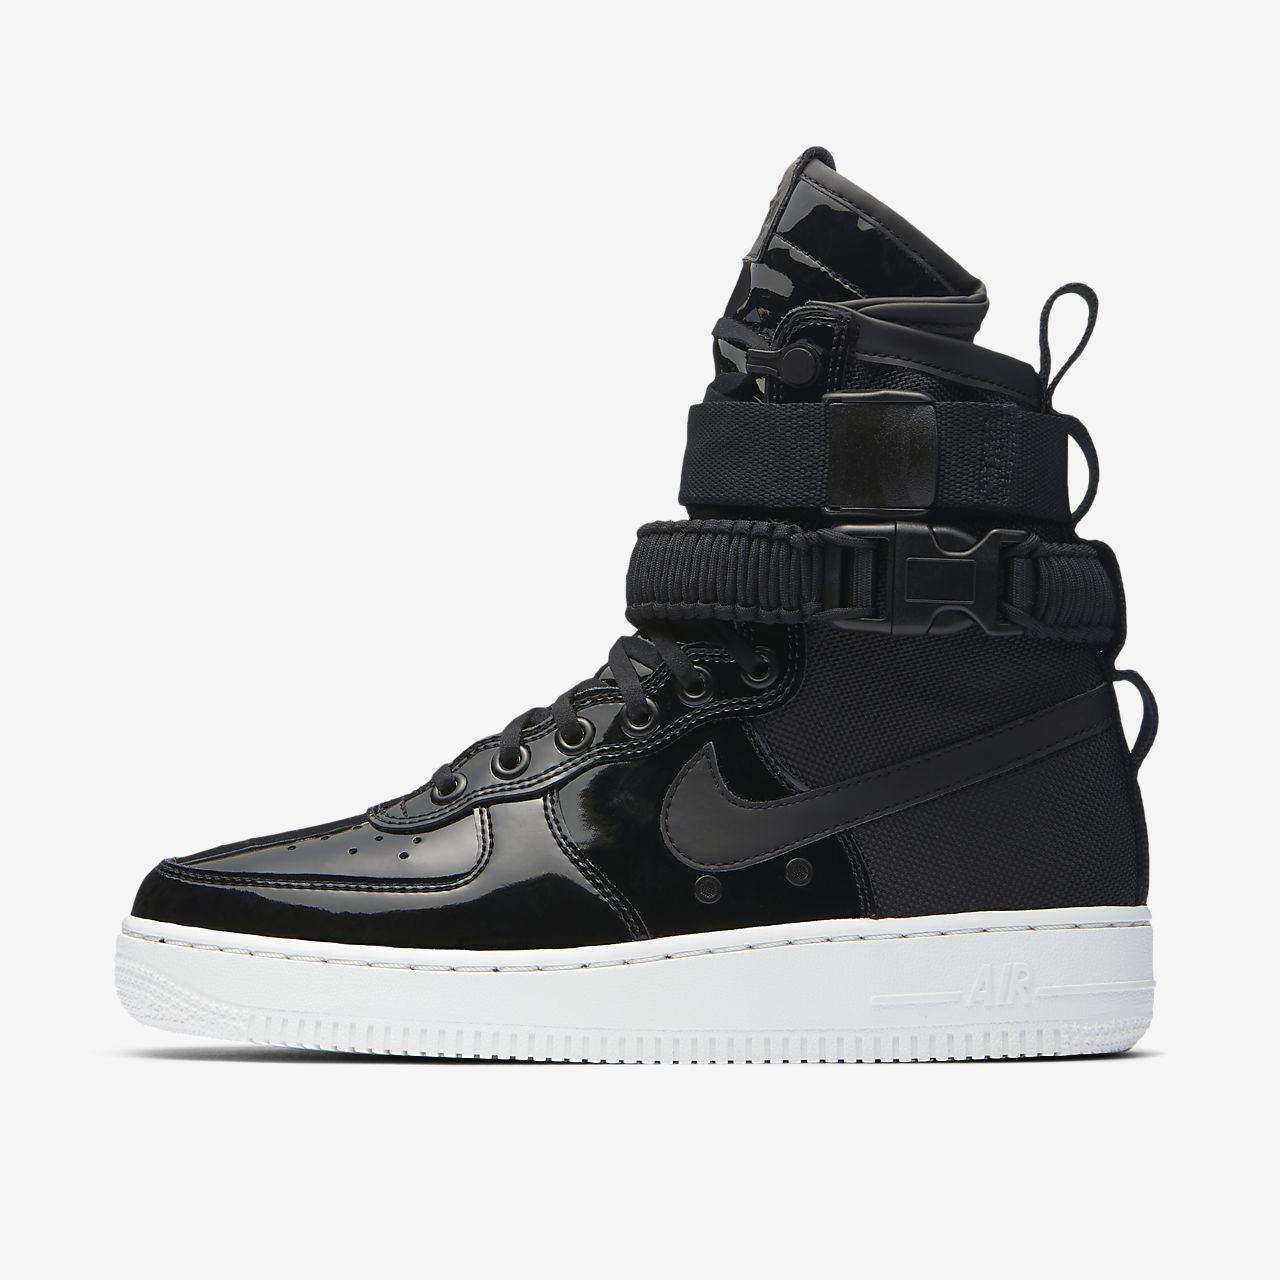 ... Nike SF Air Force 1 SE Premium Women's Shoe